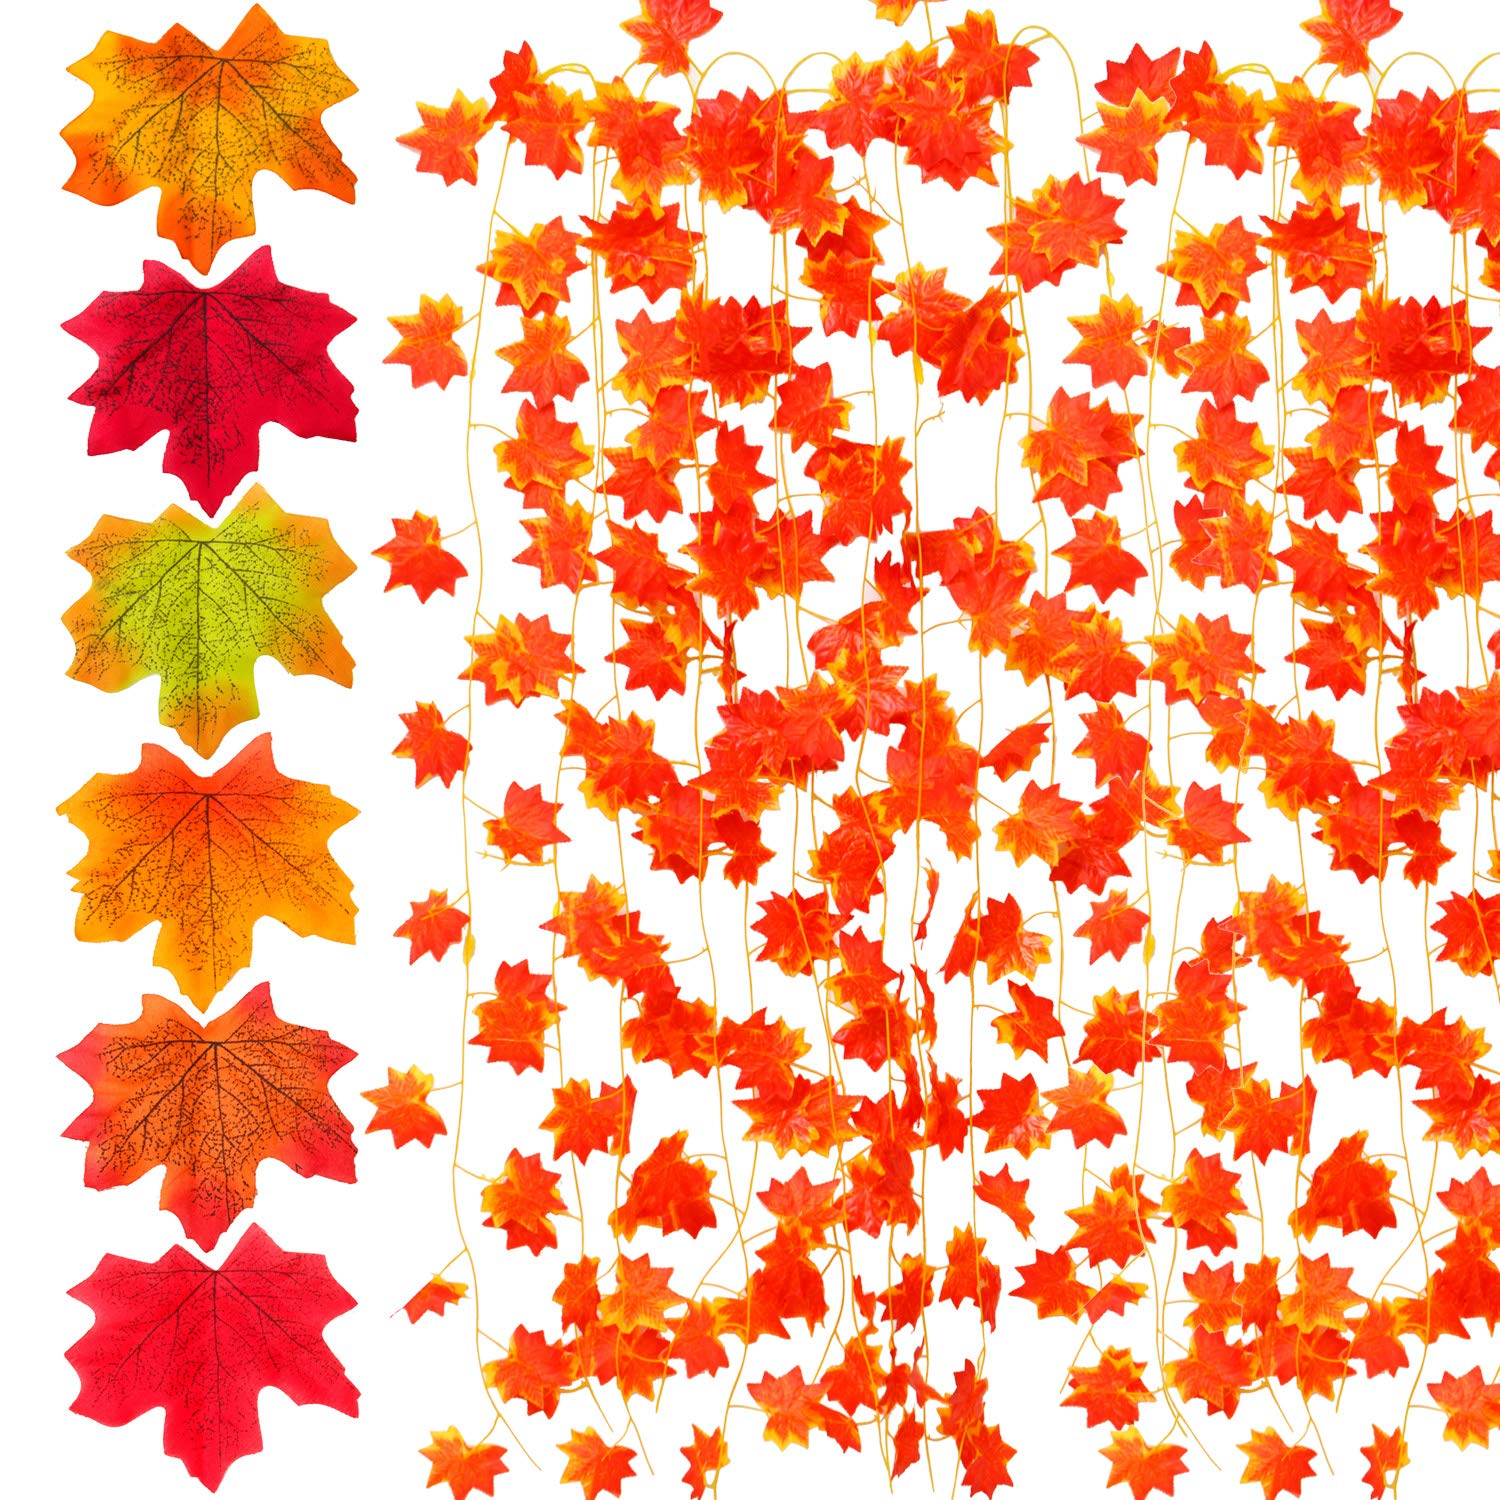 Elcoho Autumn Artificial Maple Leaf Garland 6 Pack and 300 Pieces 6 Colors Artificial Maple Leaves for Weddings Christmas Party Decorations